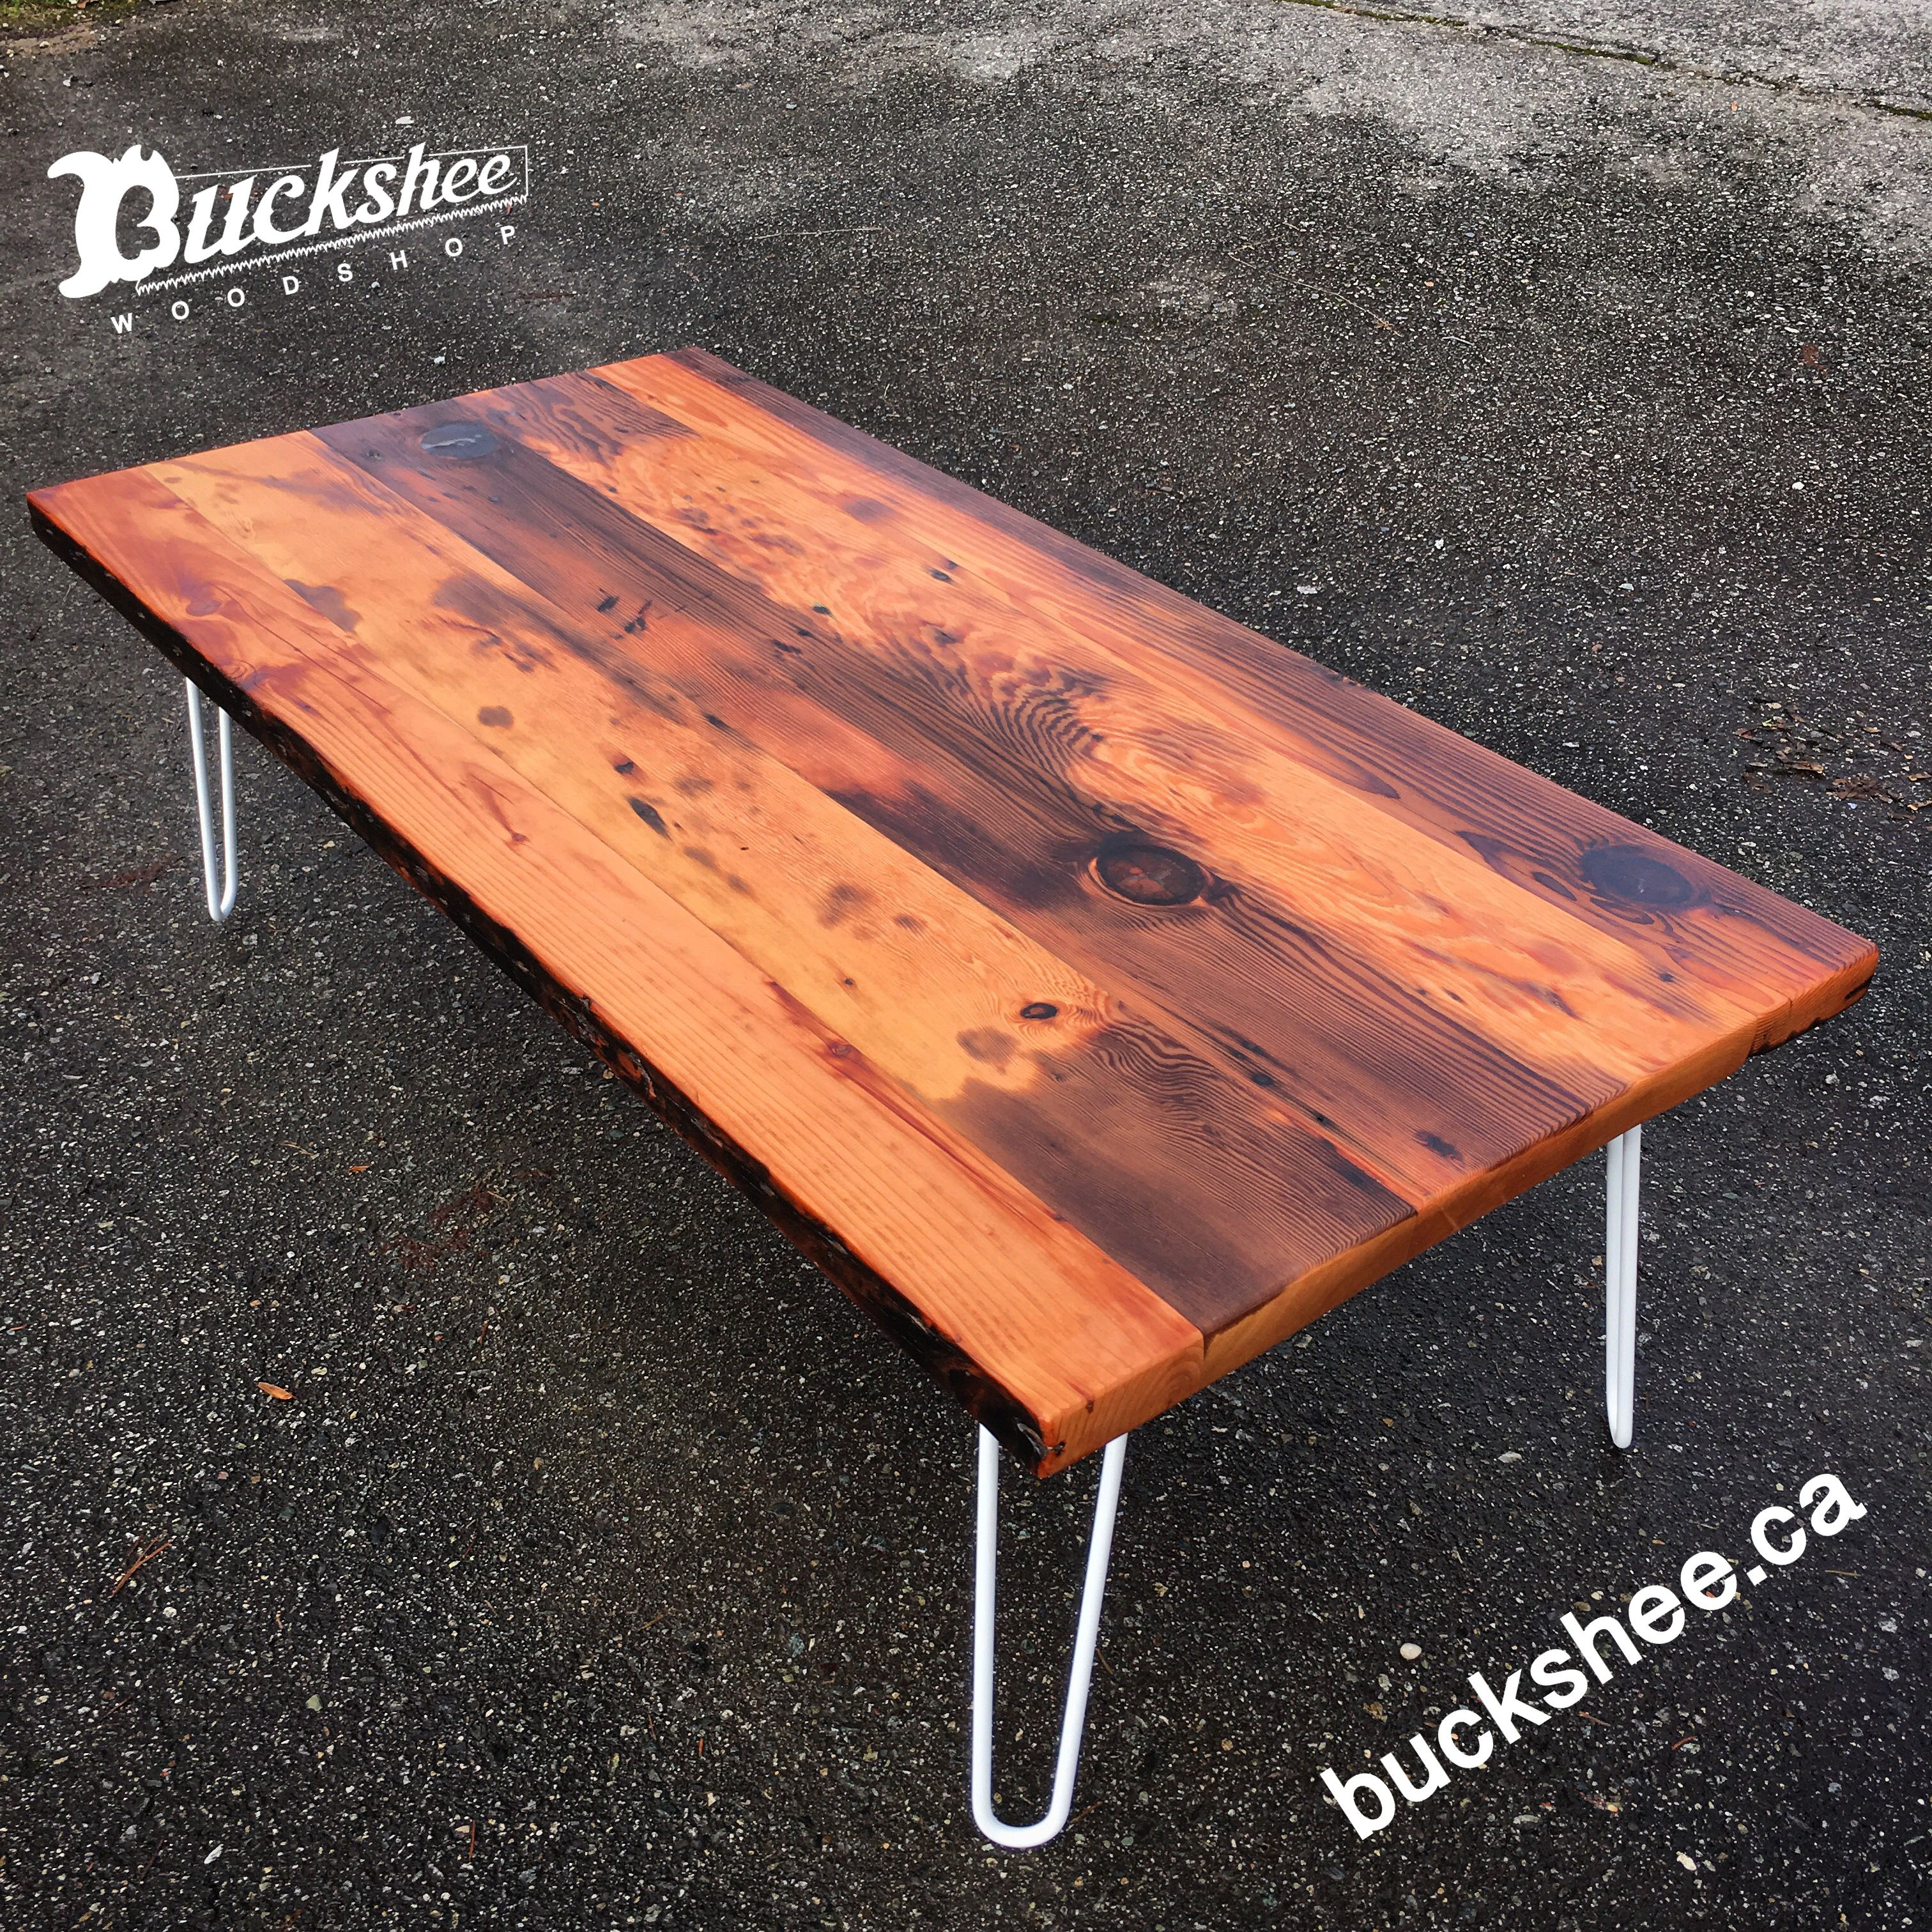 BUCKSHEE Woodshop in Vancouver B.C. Custom pieces using reclaimed wood.....absolutely stunning furniture! Glad to find you guys!